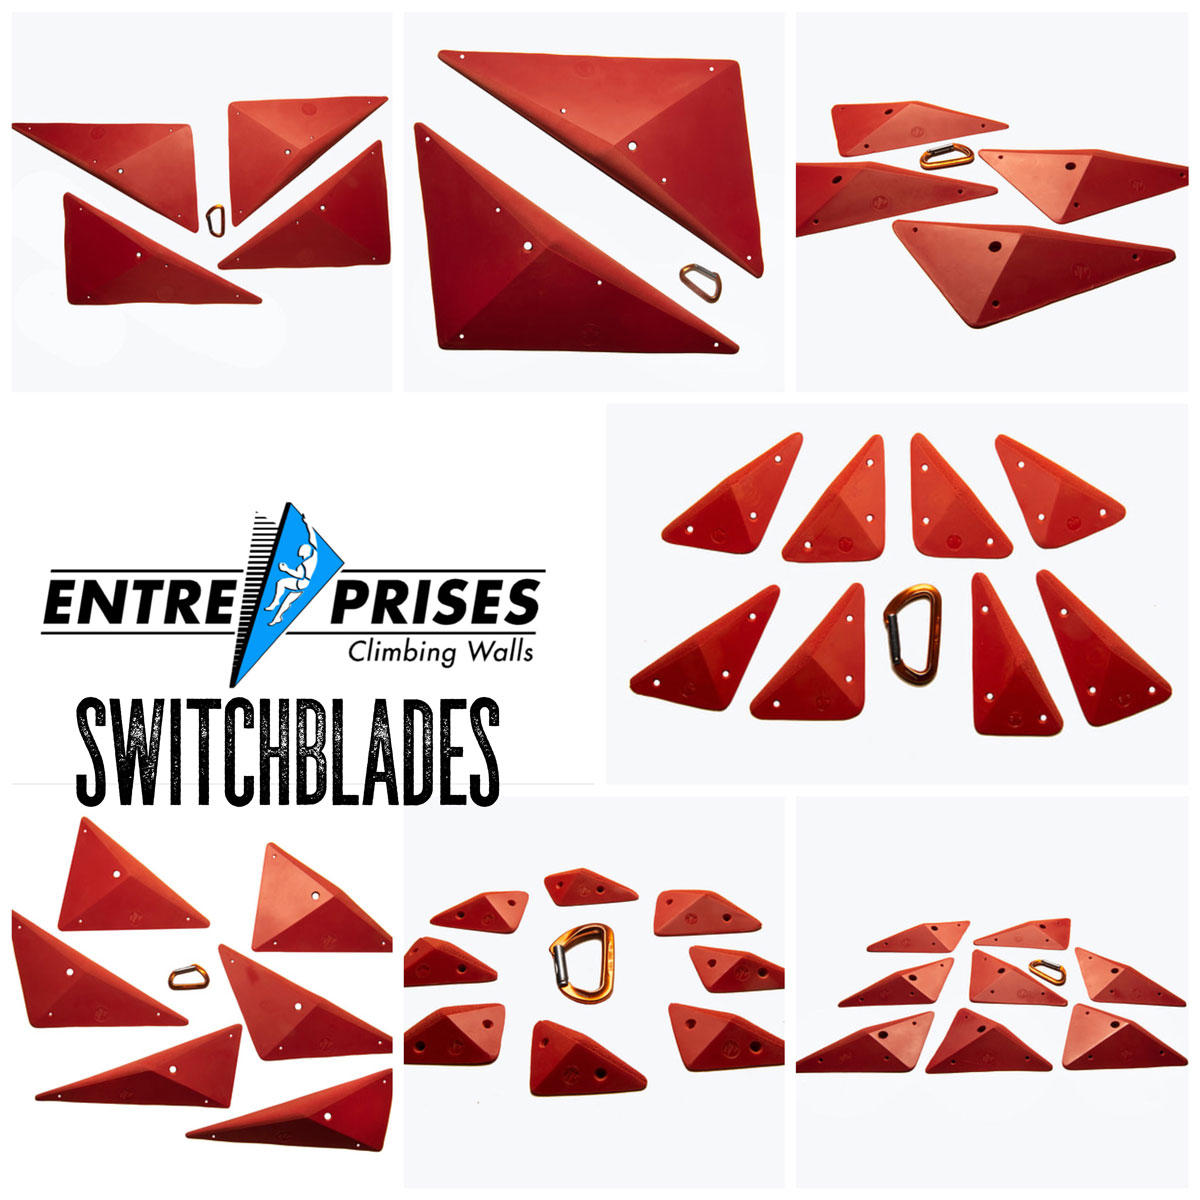 Switchblades from Entre-Prises